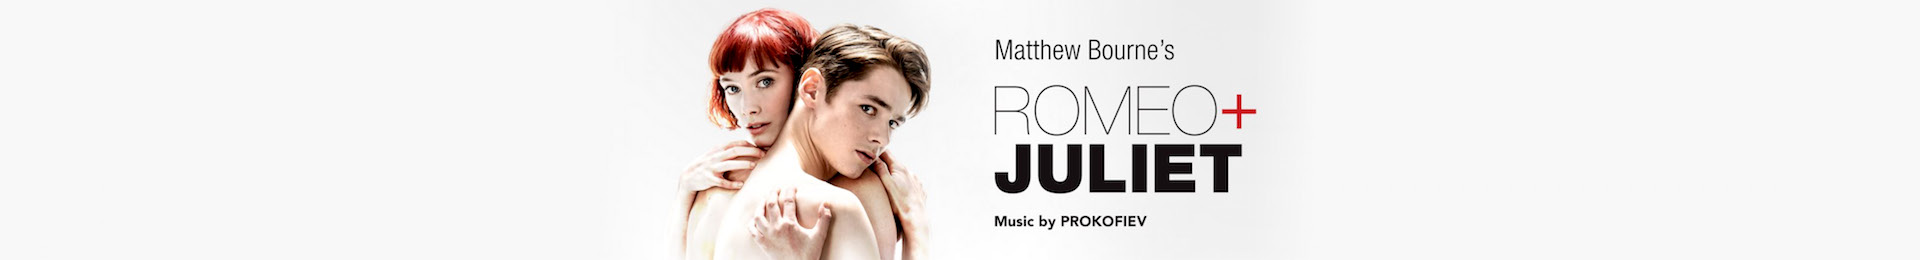 Matthew Bourne's Romeo and Juliet banner image